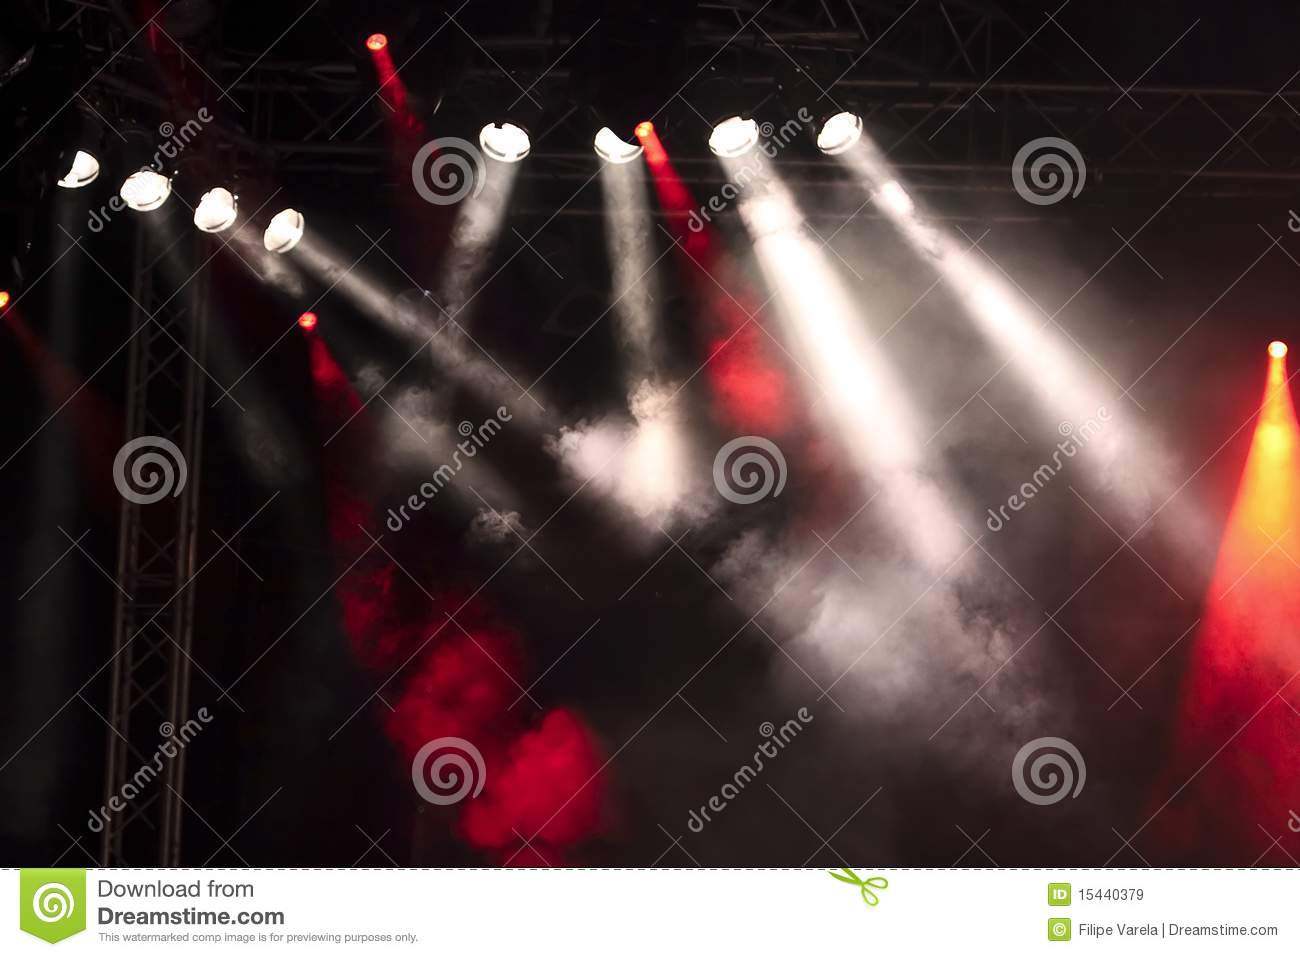 Lights on a stage